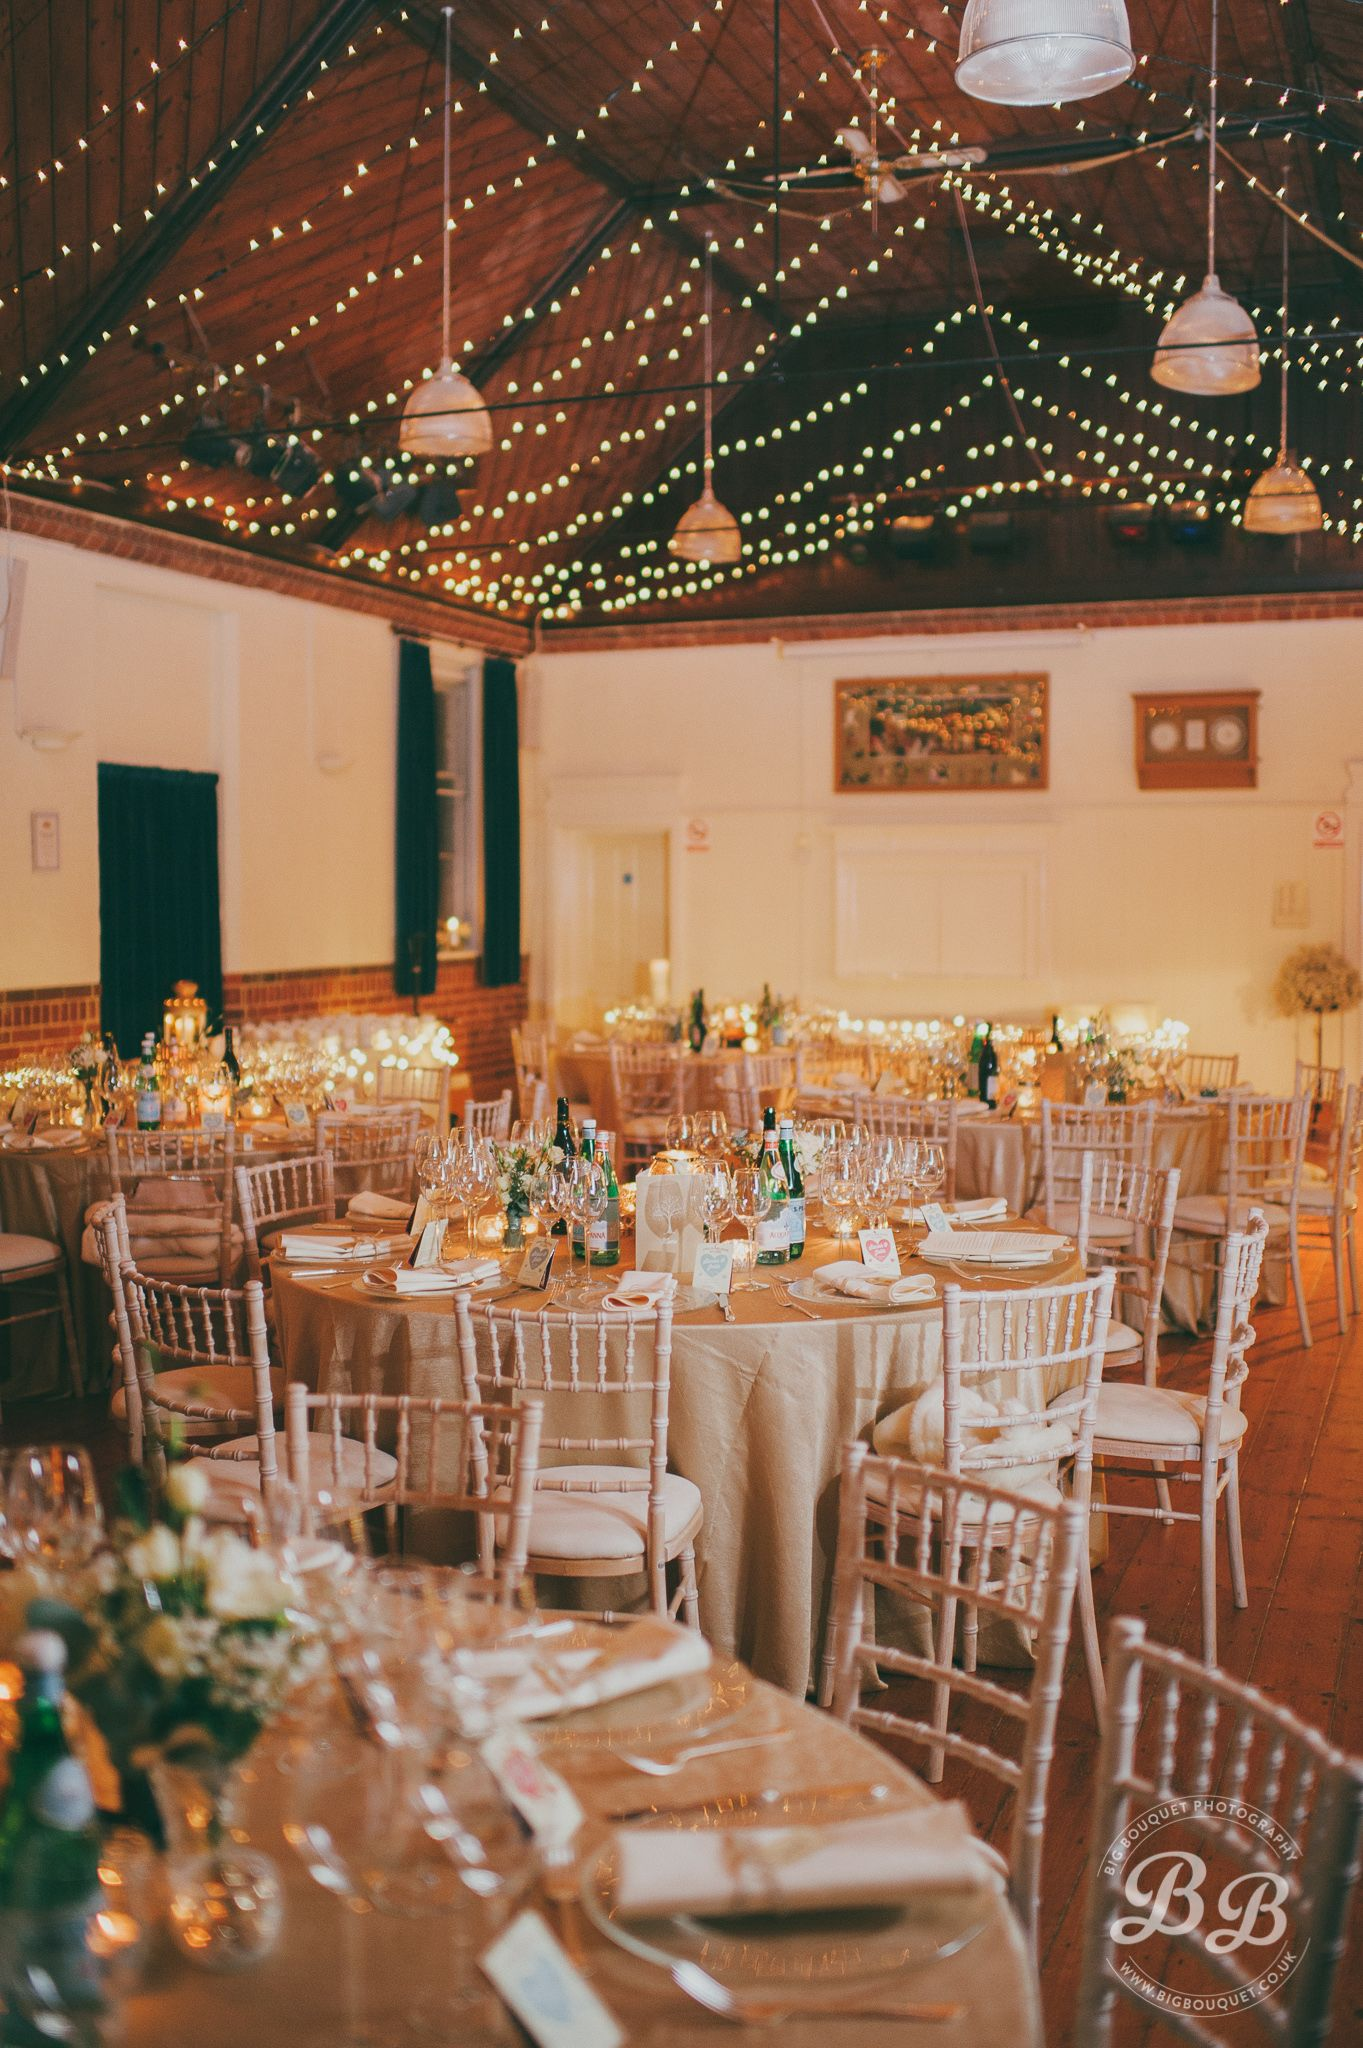 Light ceiling garlands to brighten up a village hall for winters ideas and inspiration for creating a beautiful village hall village fete styled wedding reception light ceiling garlands to brighten up a village hall junglespirit